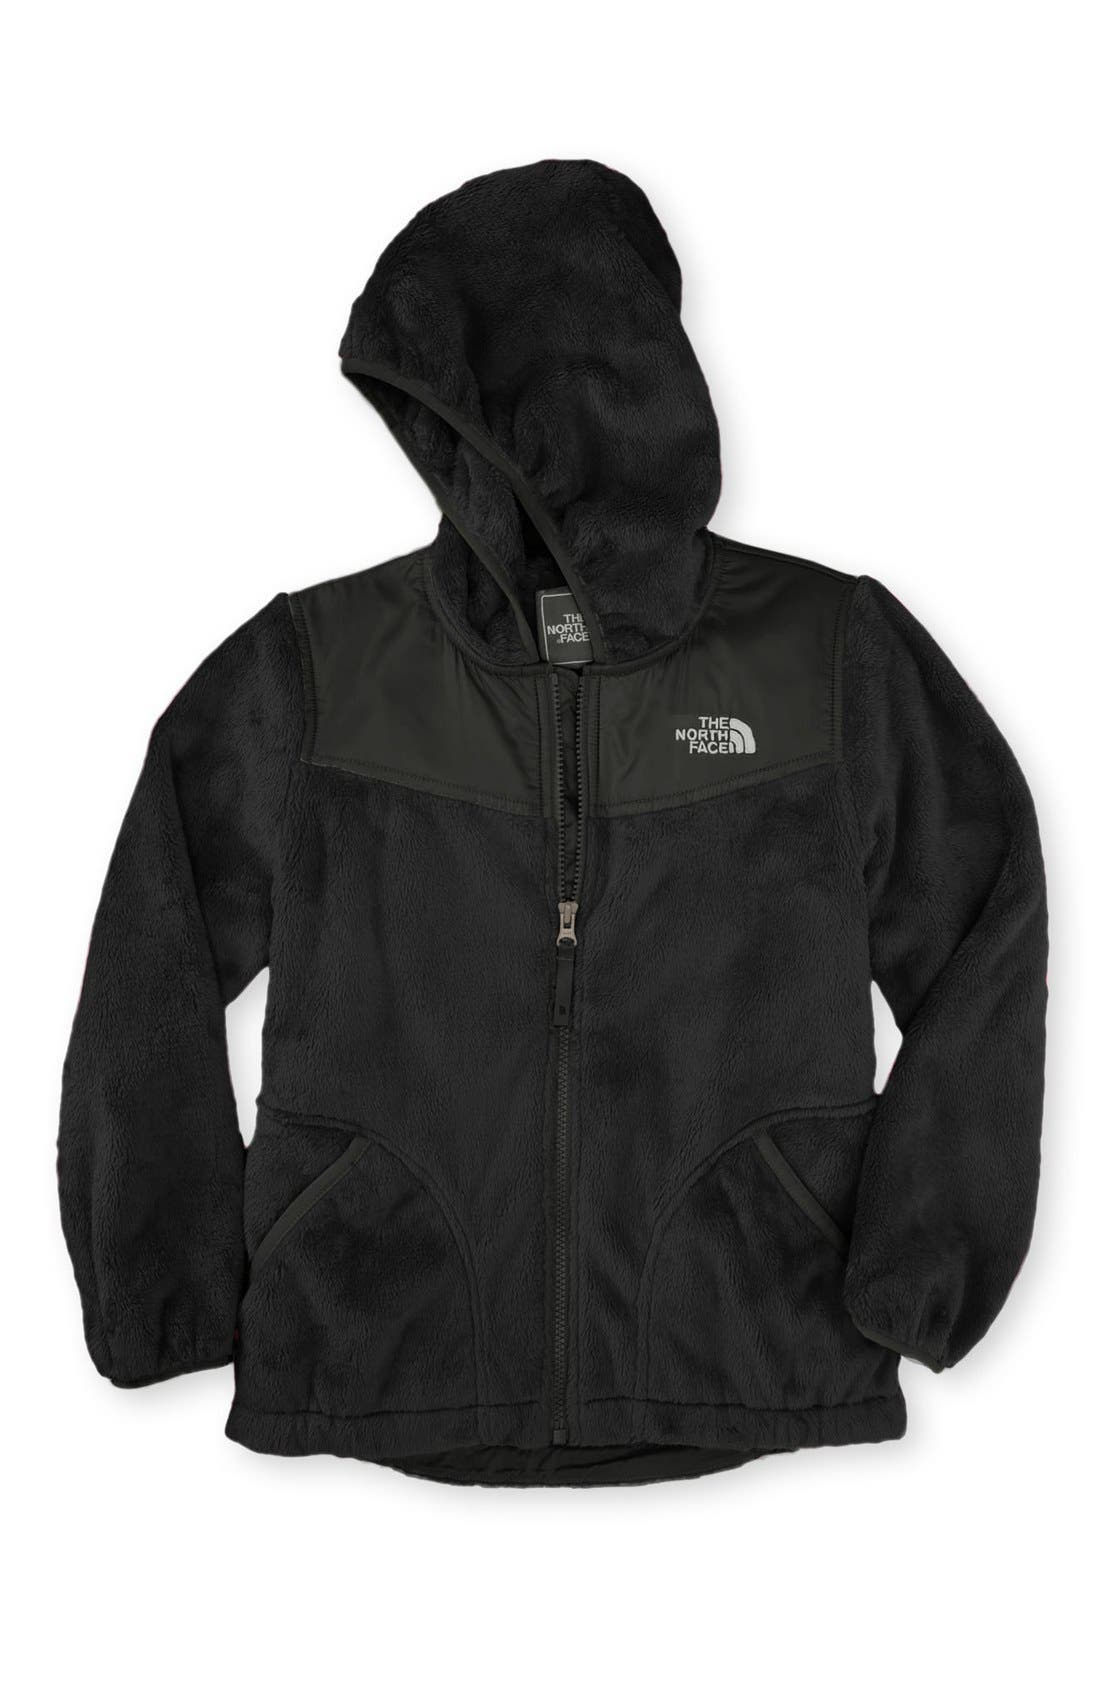 Alternate Image 1 Selected - The North Face 'Oso' Plush Fleece Hooded Jacket (Big Girls)